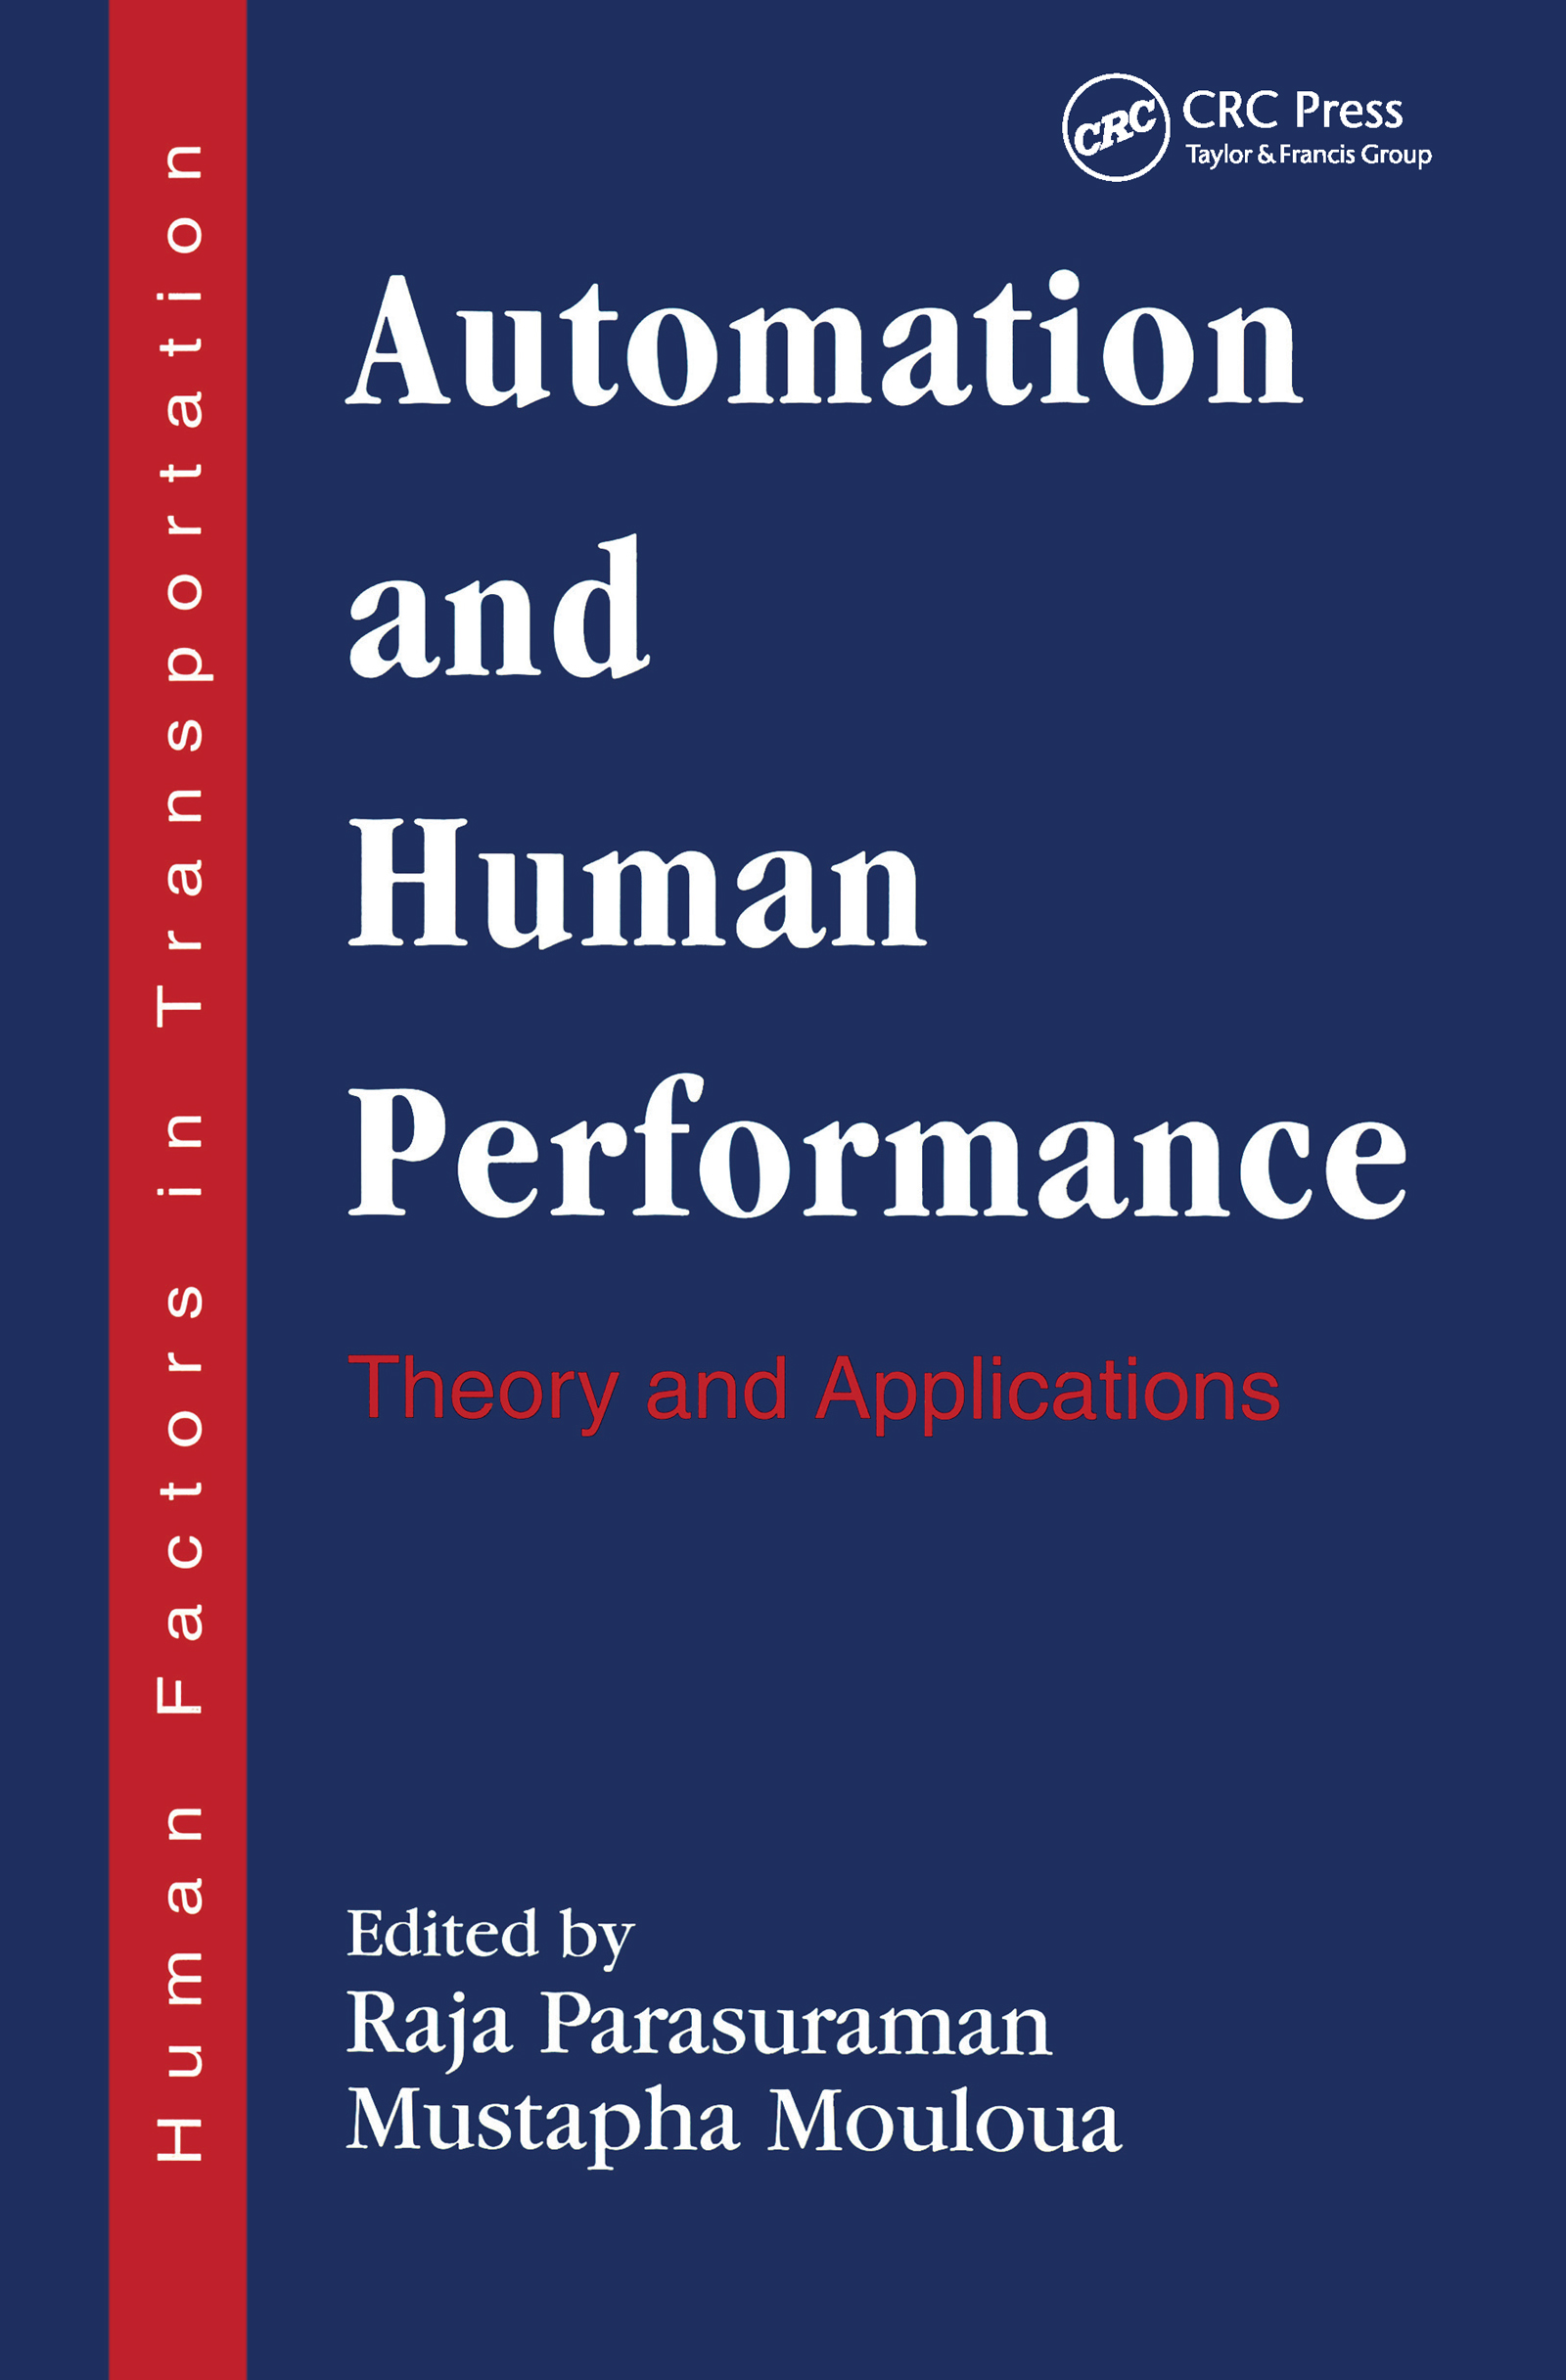 Automation and Human Performance